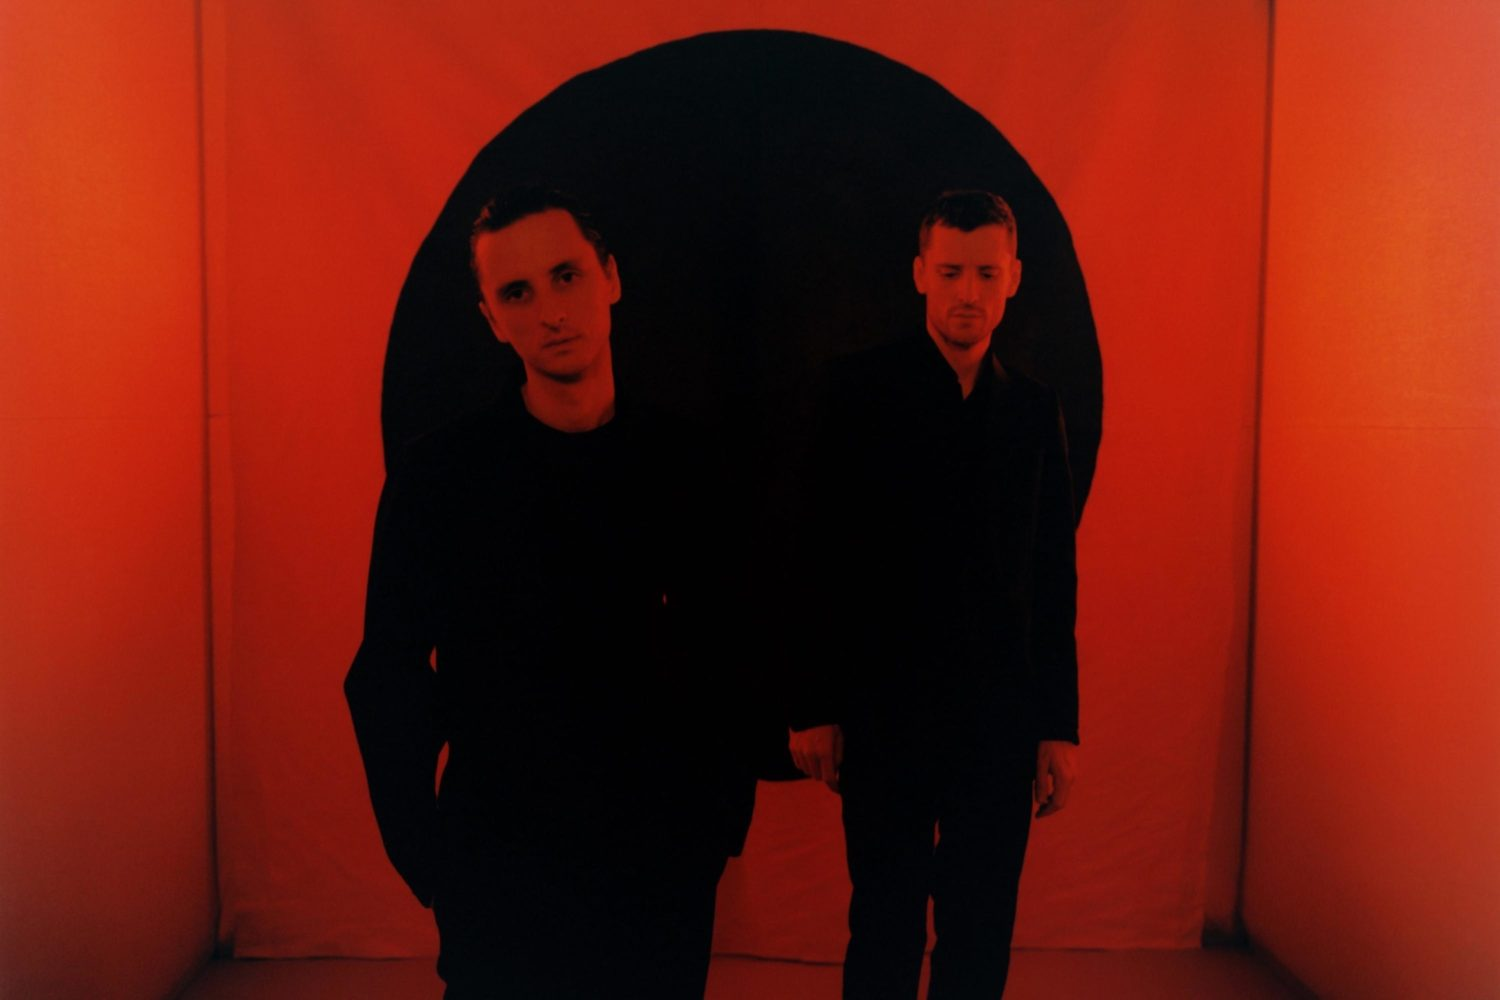 These New Puritans announce new album 'Inside The Rose'